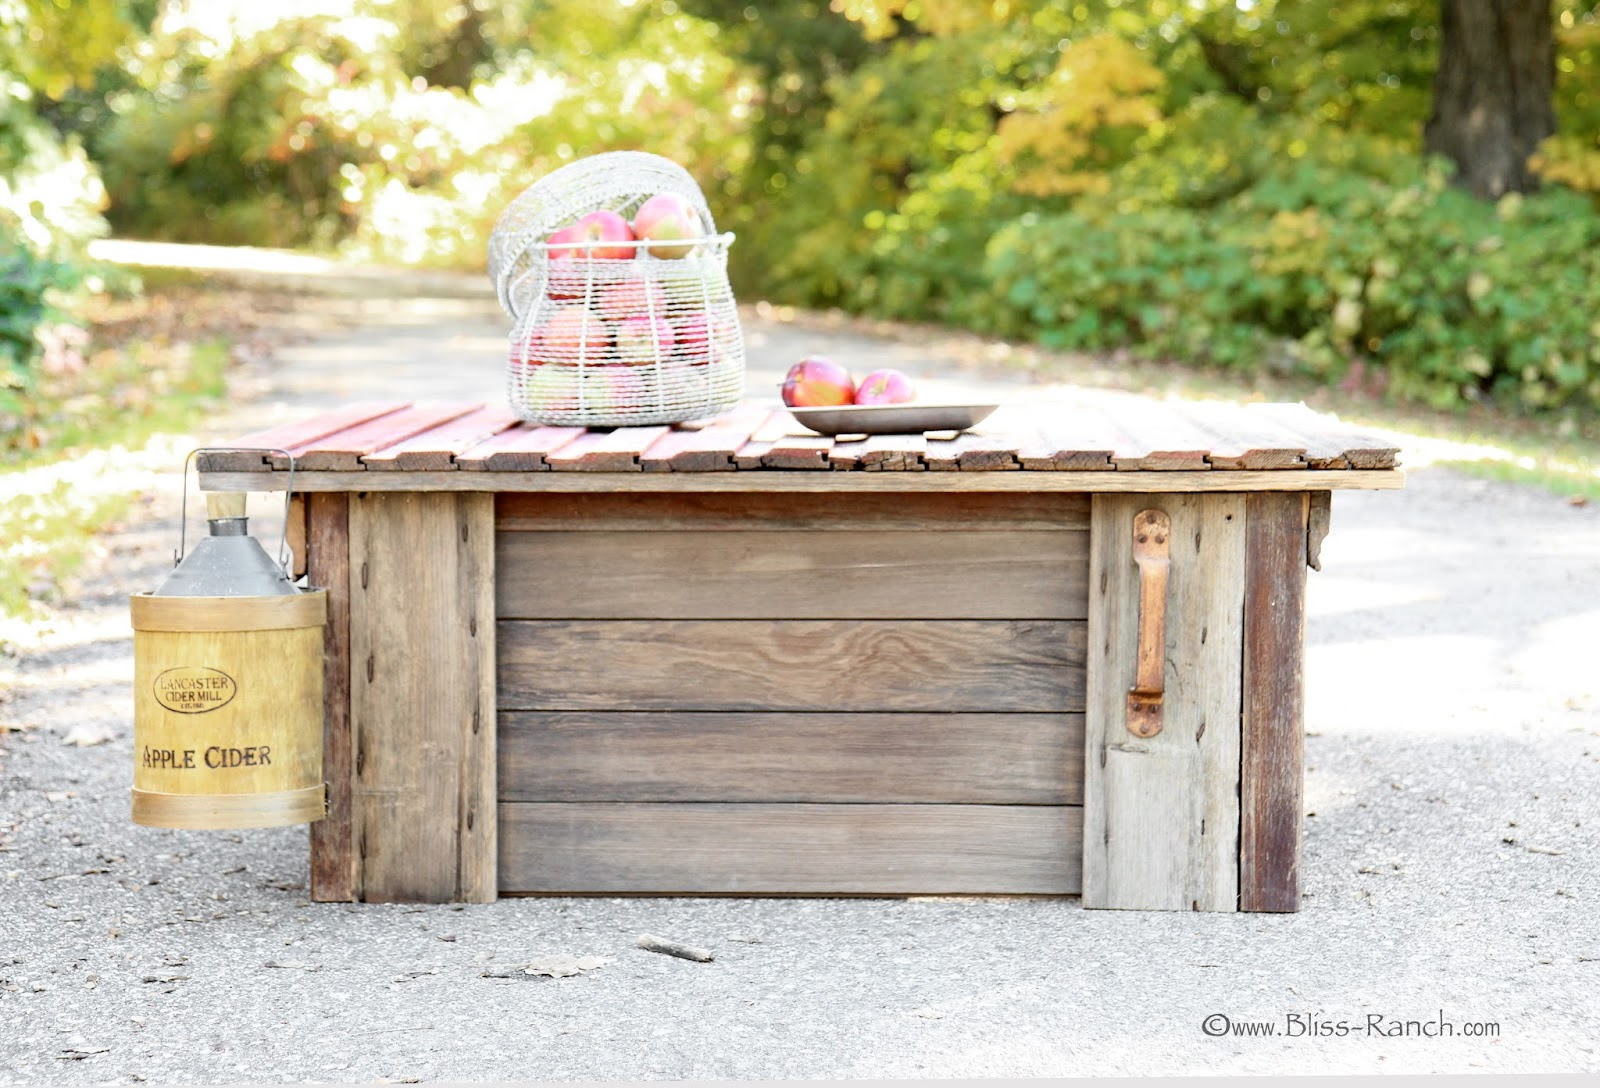 Old Barn Door Turned Coffee Table Bliss-Ranch.com